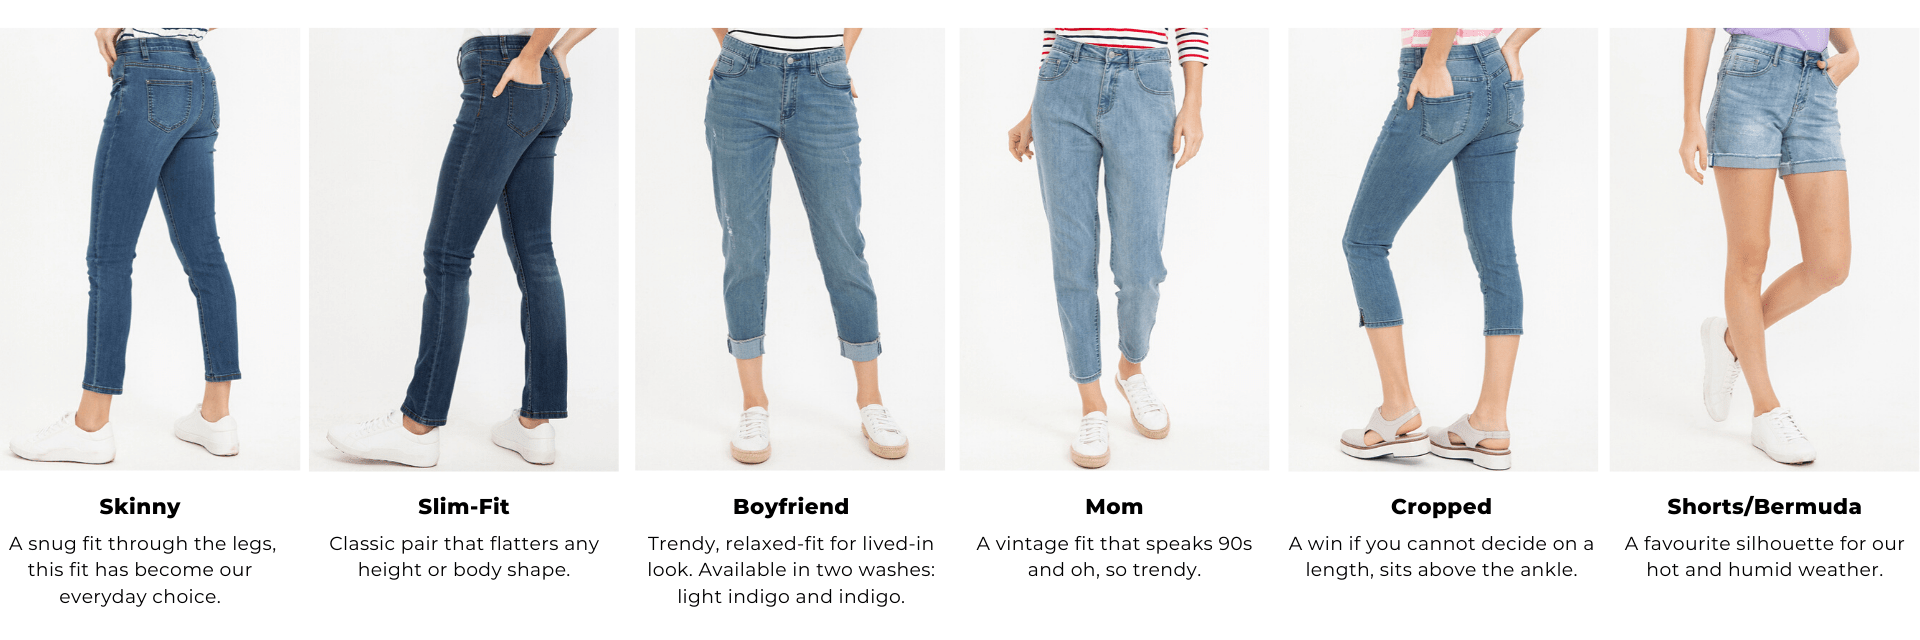 Denim Website